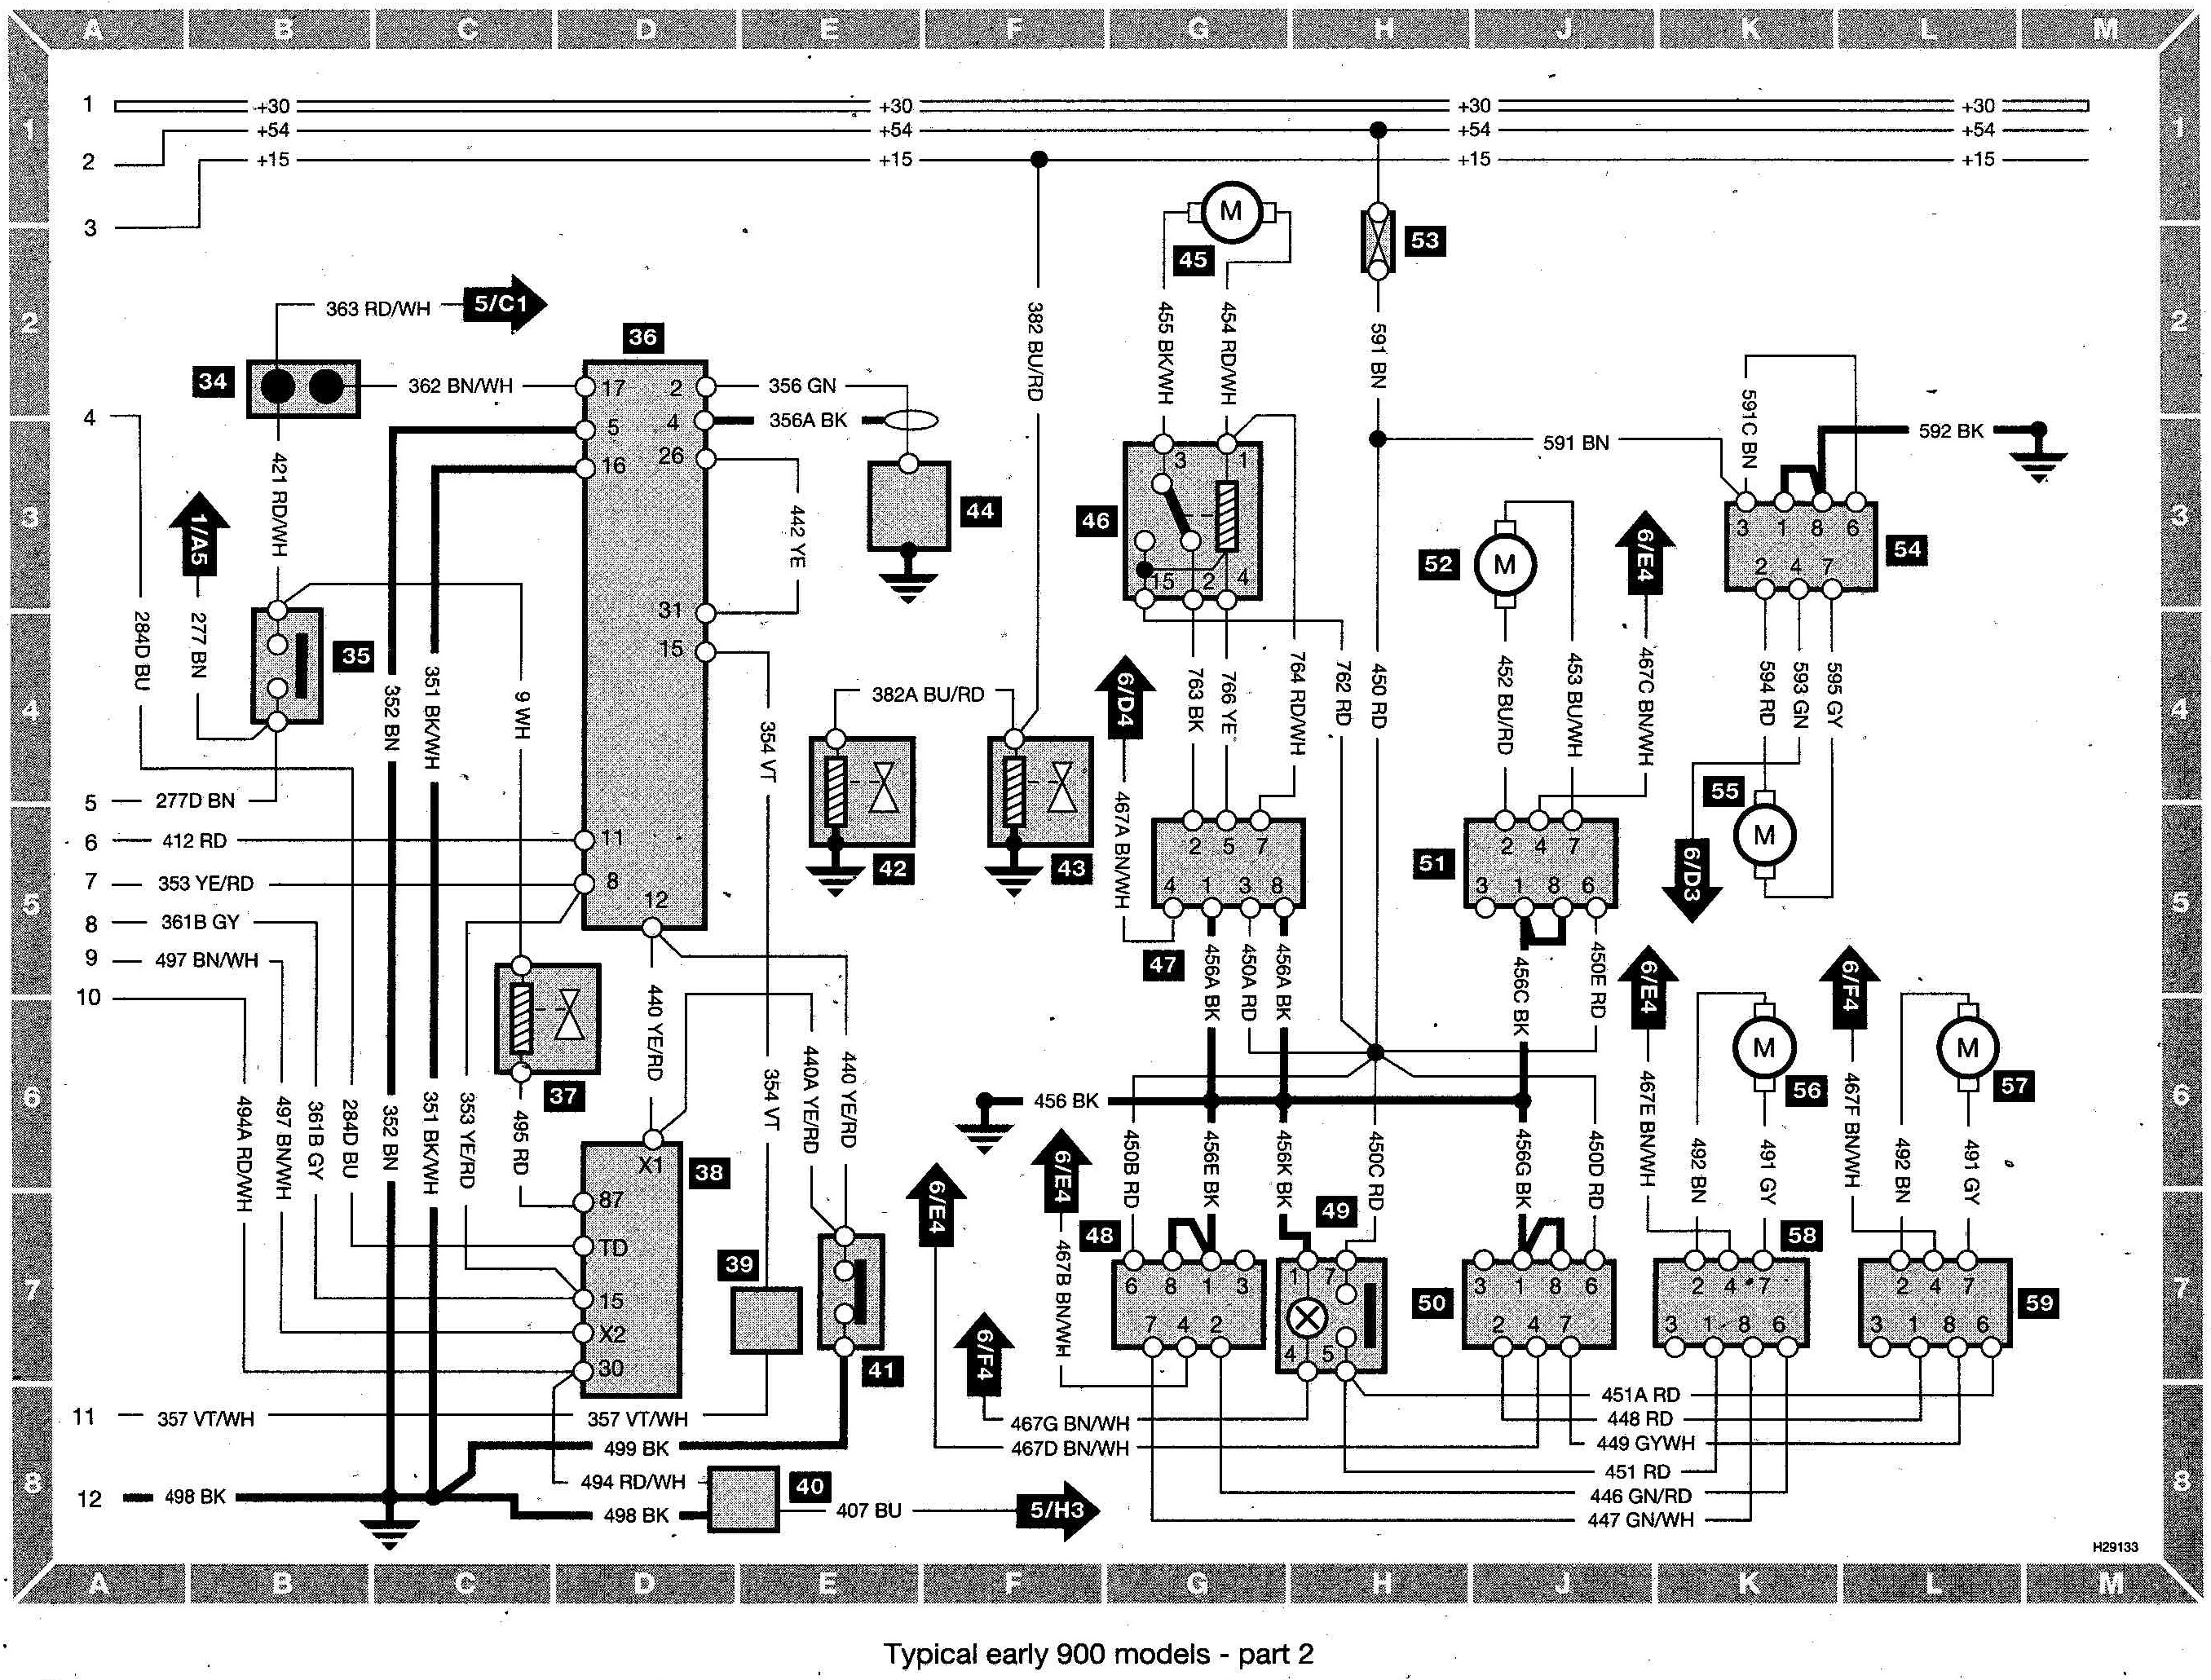 Saab 900 Wiring diagram (early models) part 2 saab wiring harness saab wiring diagrams instruction  at virtualis.co